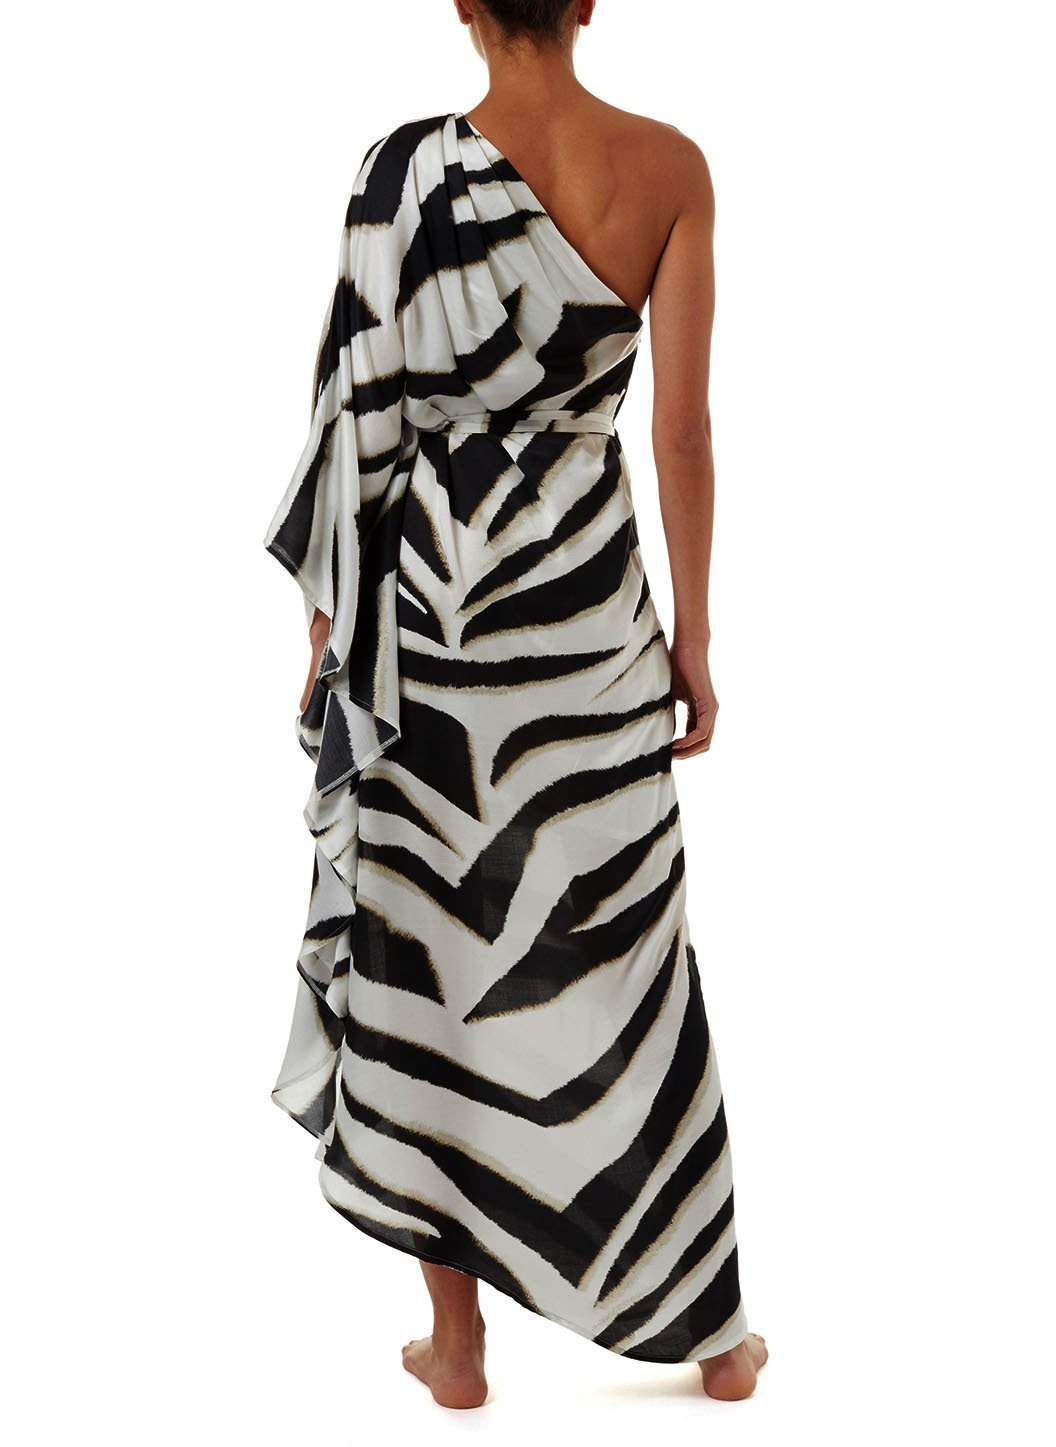 lauren zebra oneshoulder belted floor length dress 2019 B